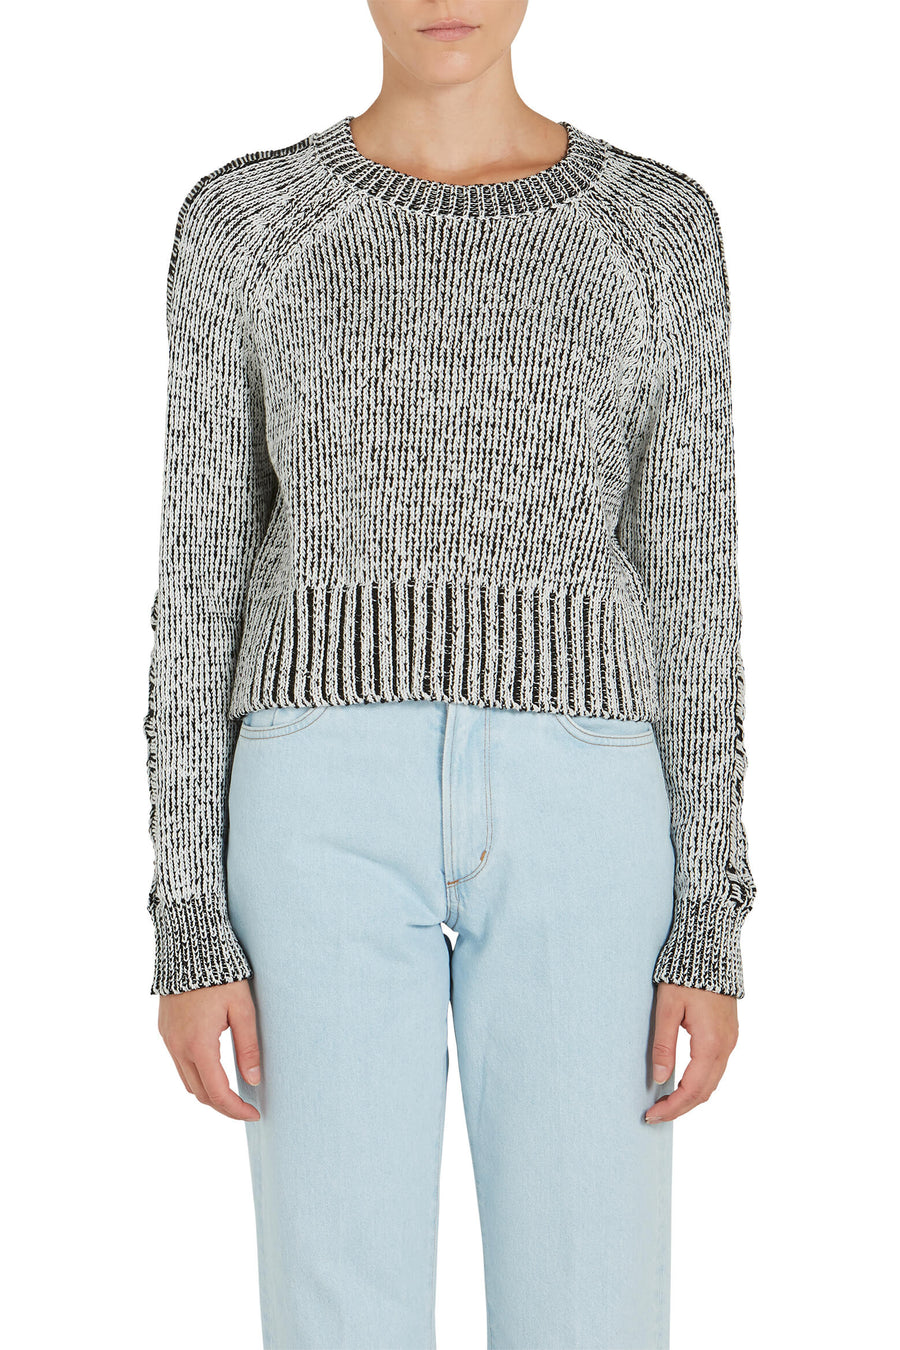 The Range Storm Knit Plated Crew Sweater